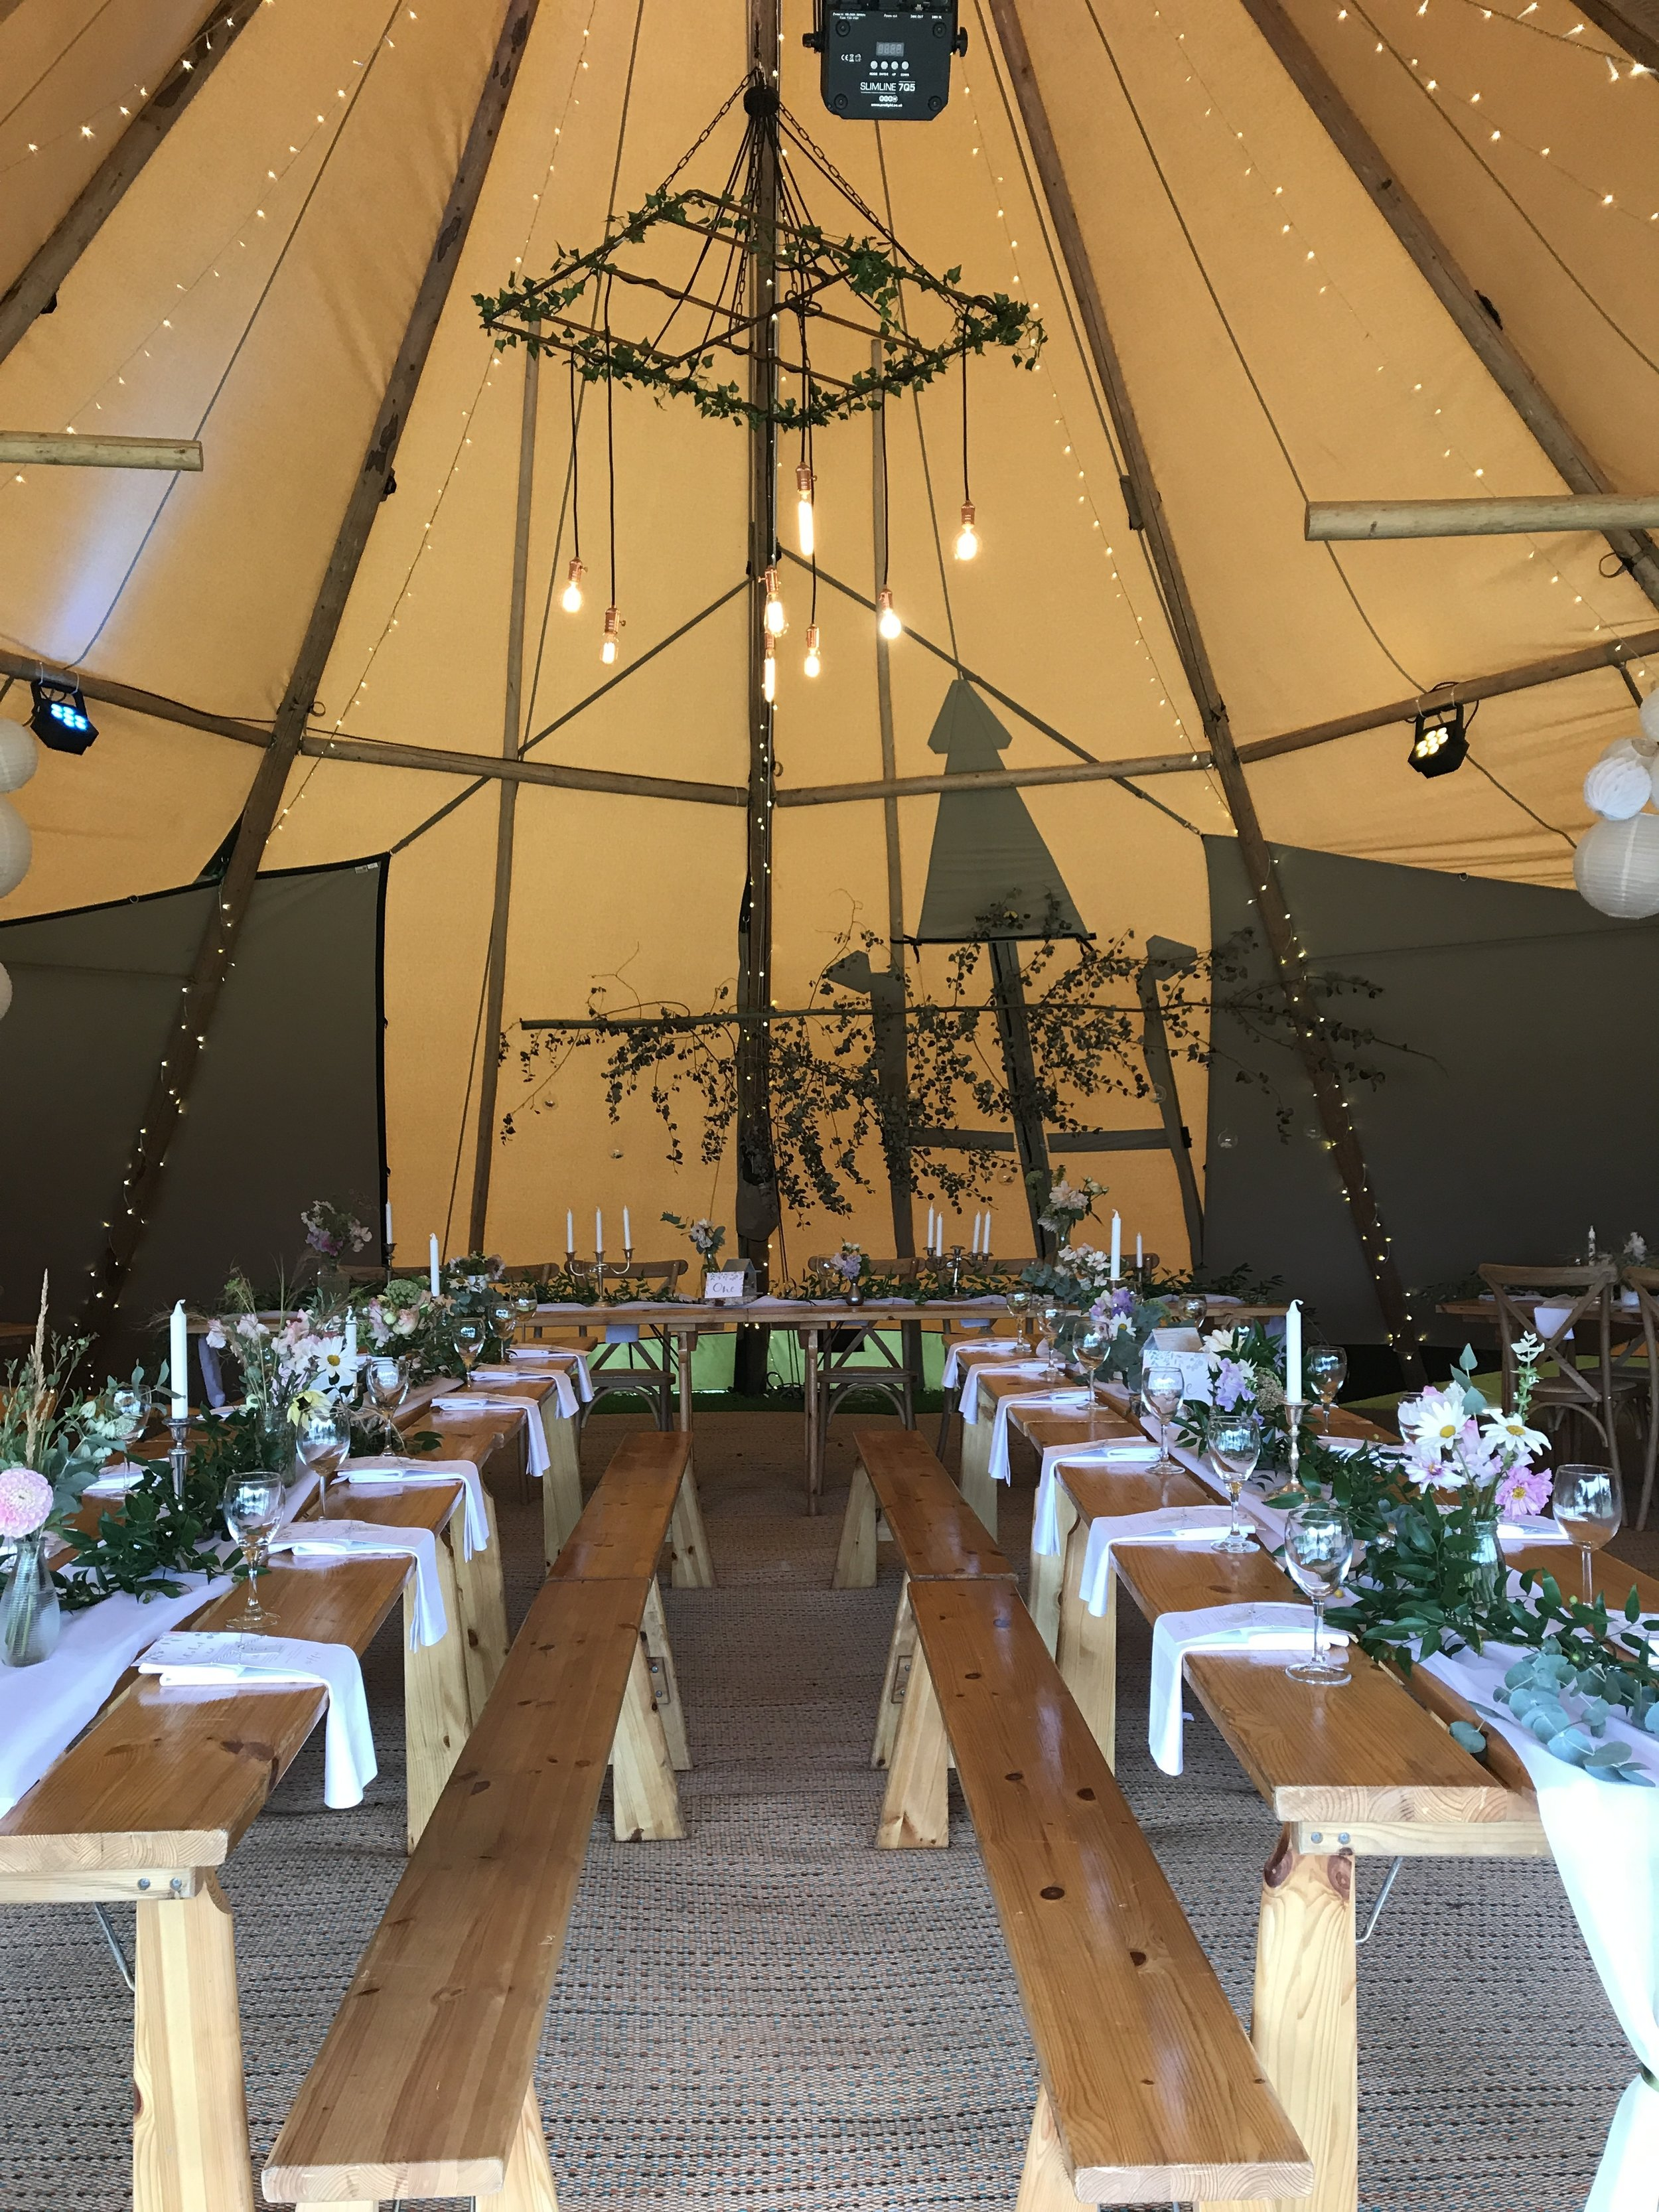 Tipi Wedding decorating